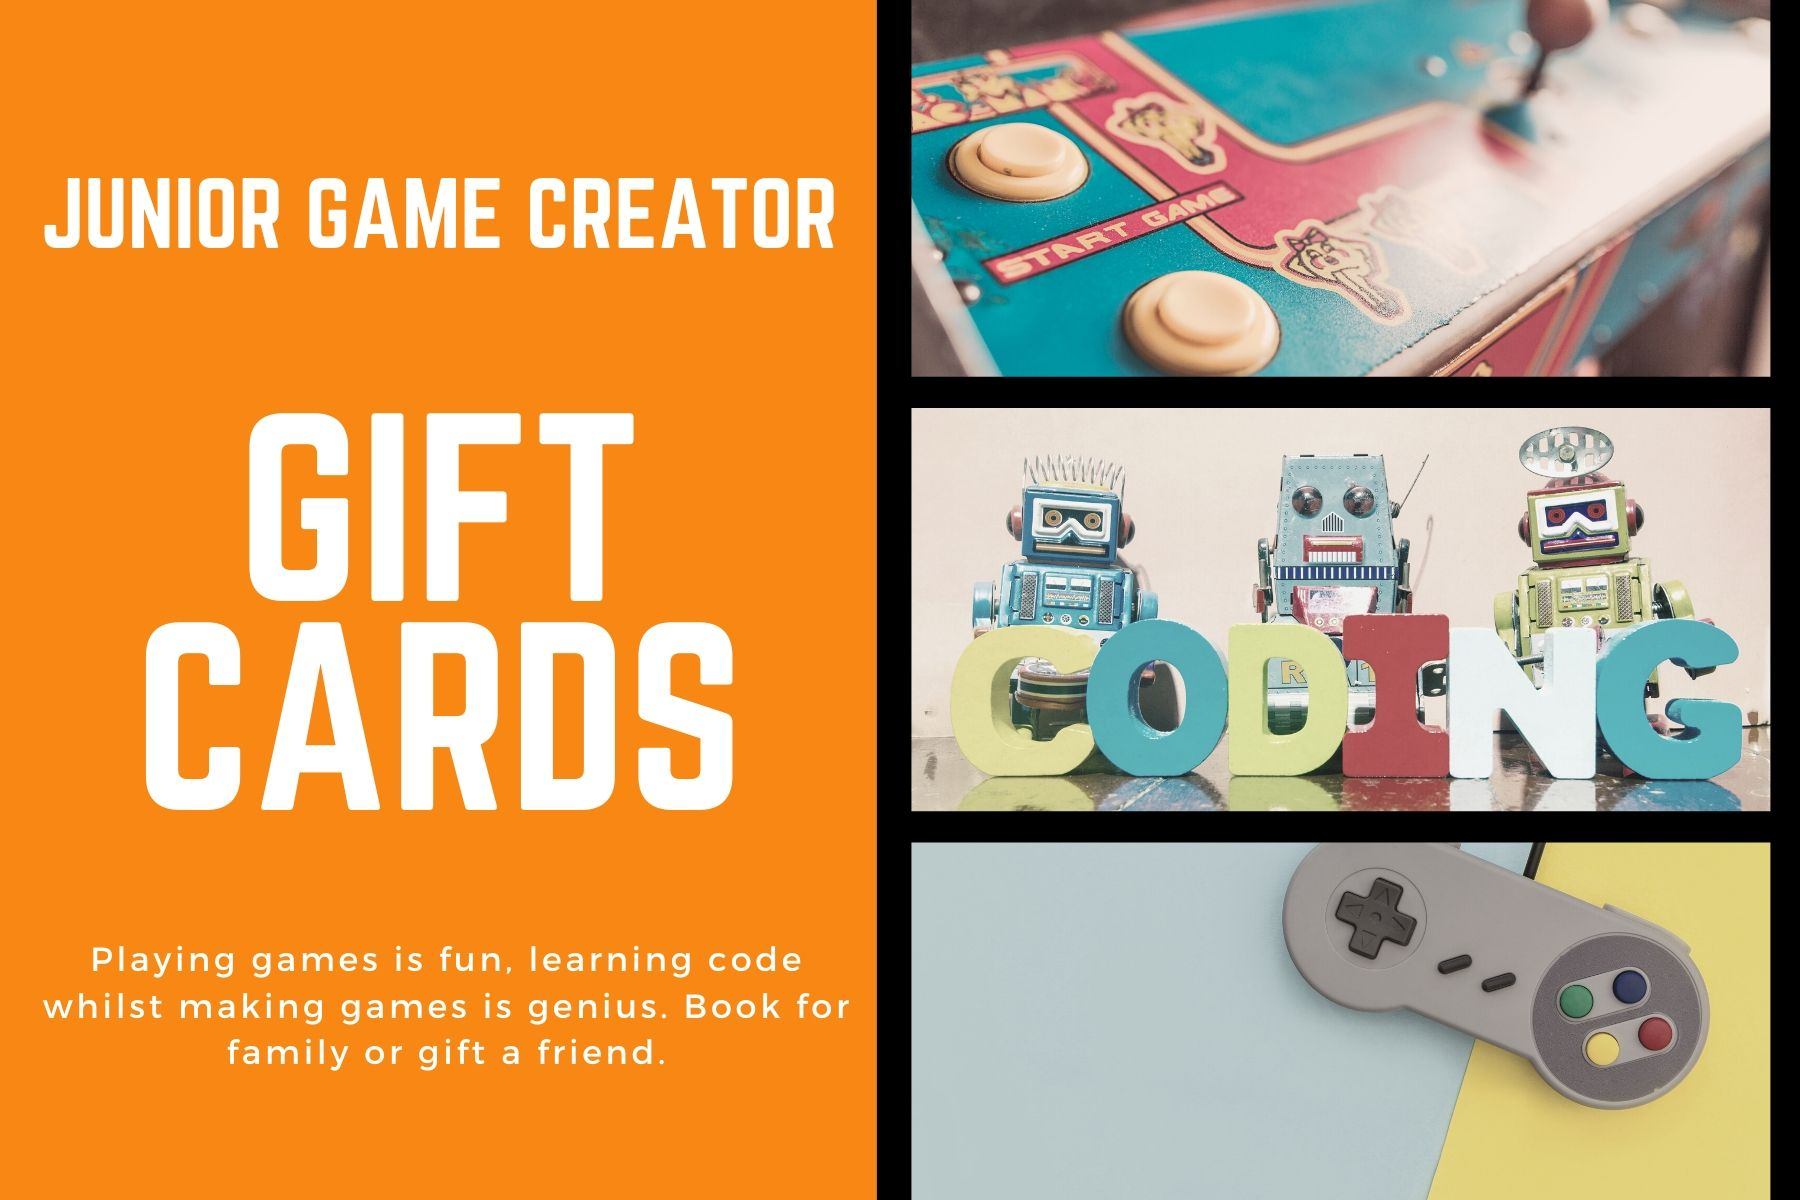 Junior Game Creator Gift Cards